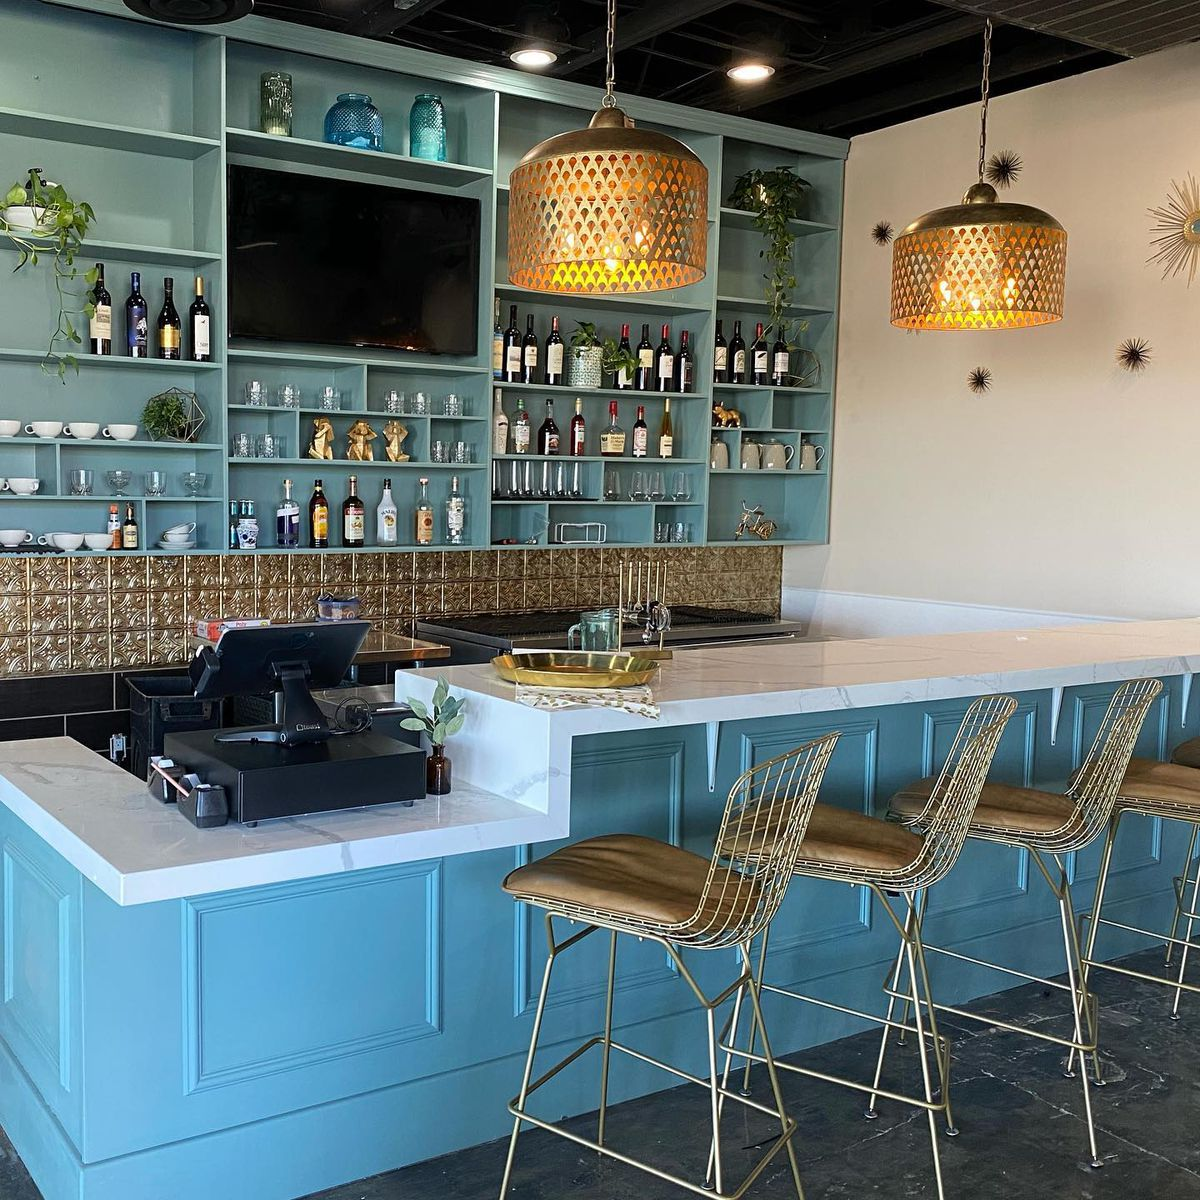 A bar with four high-top chairs. The bottom of the bar and back bar are blue. The counter is white. There is a cash register on the left.